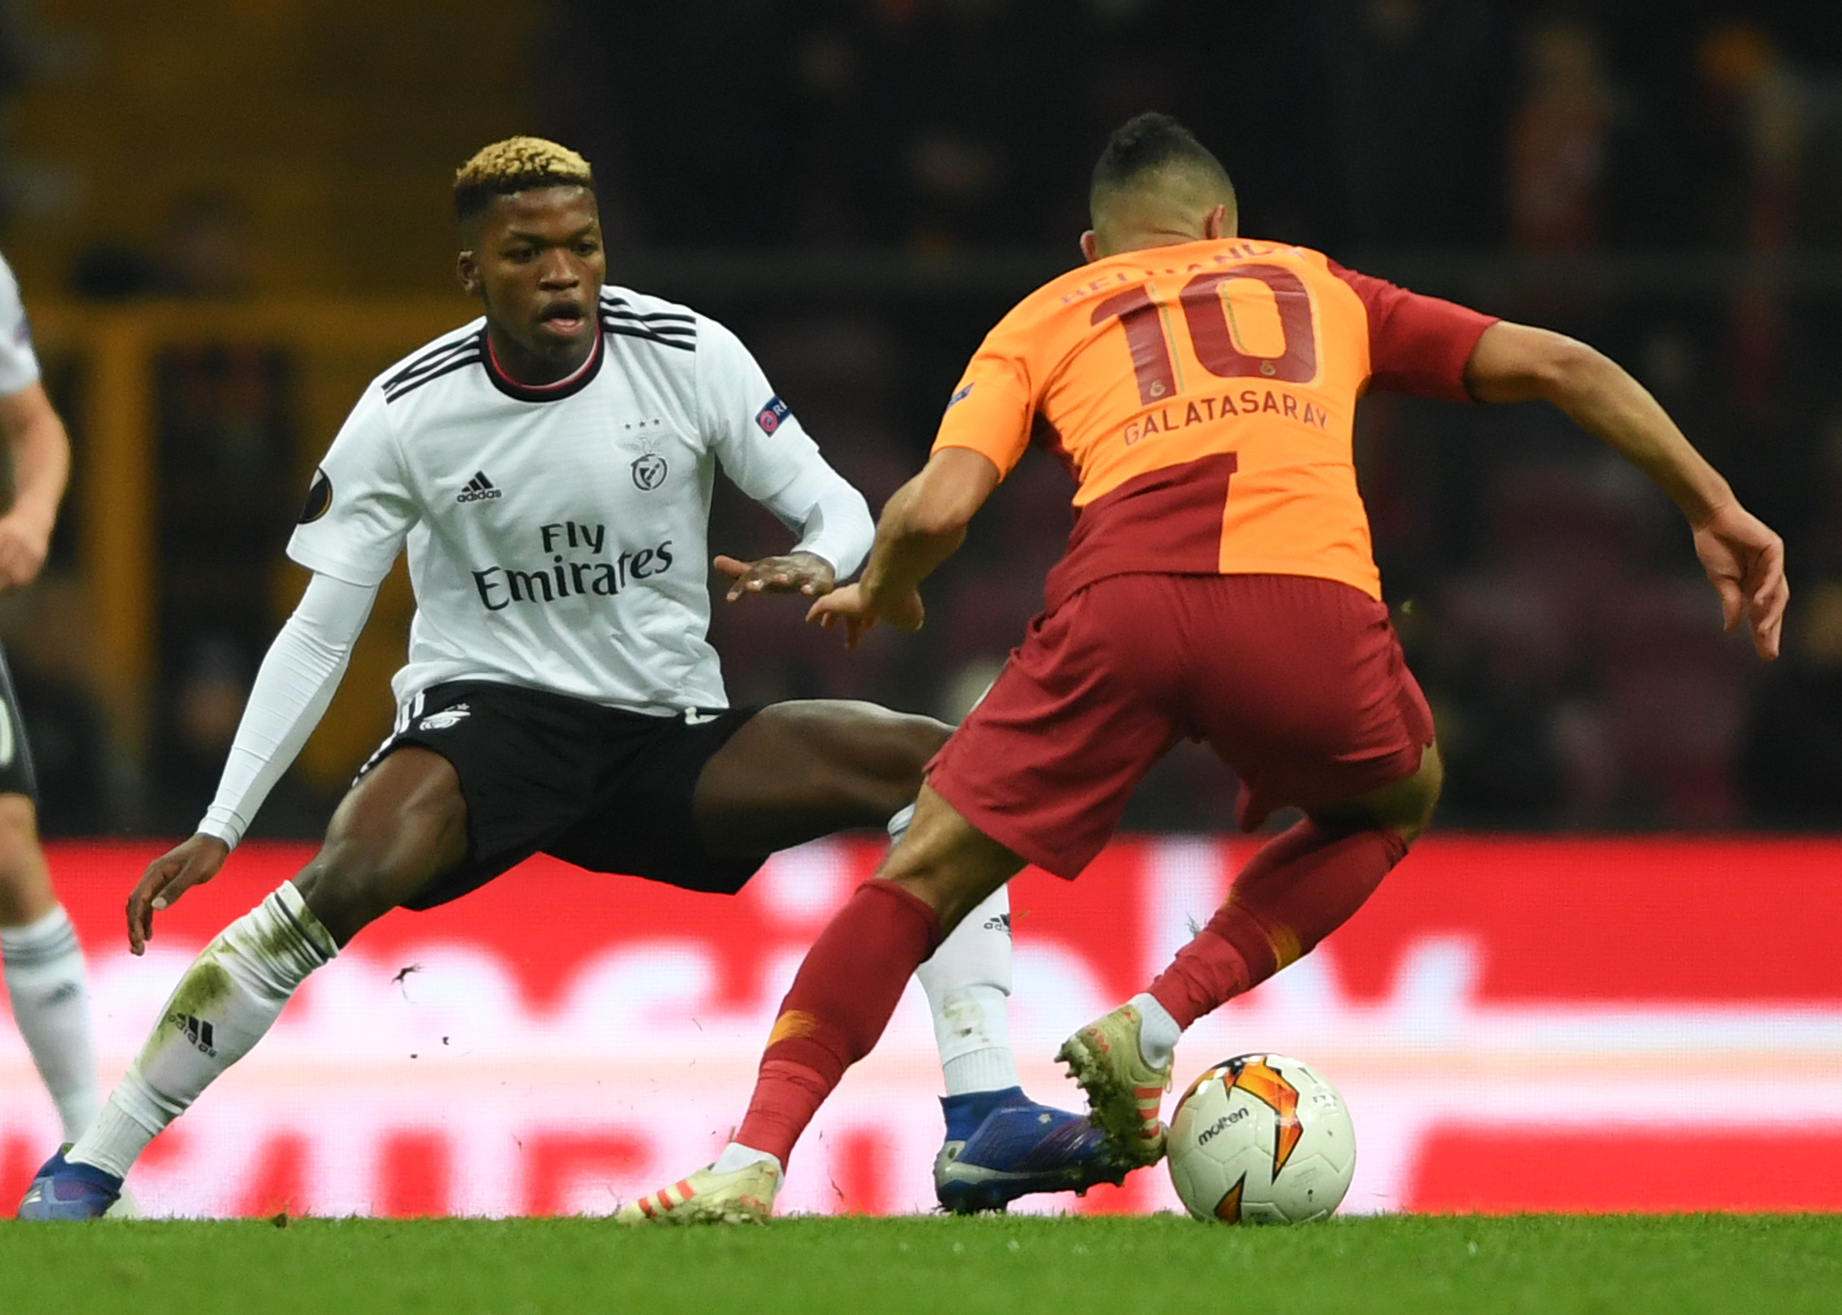 Florentino Luis (L) in action against Galatasary (Getty Images)